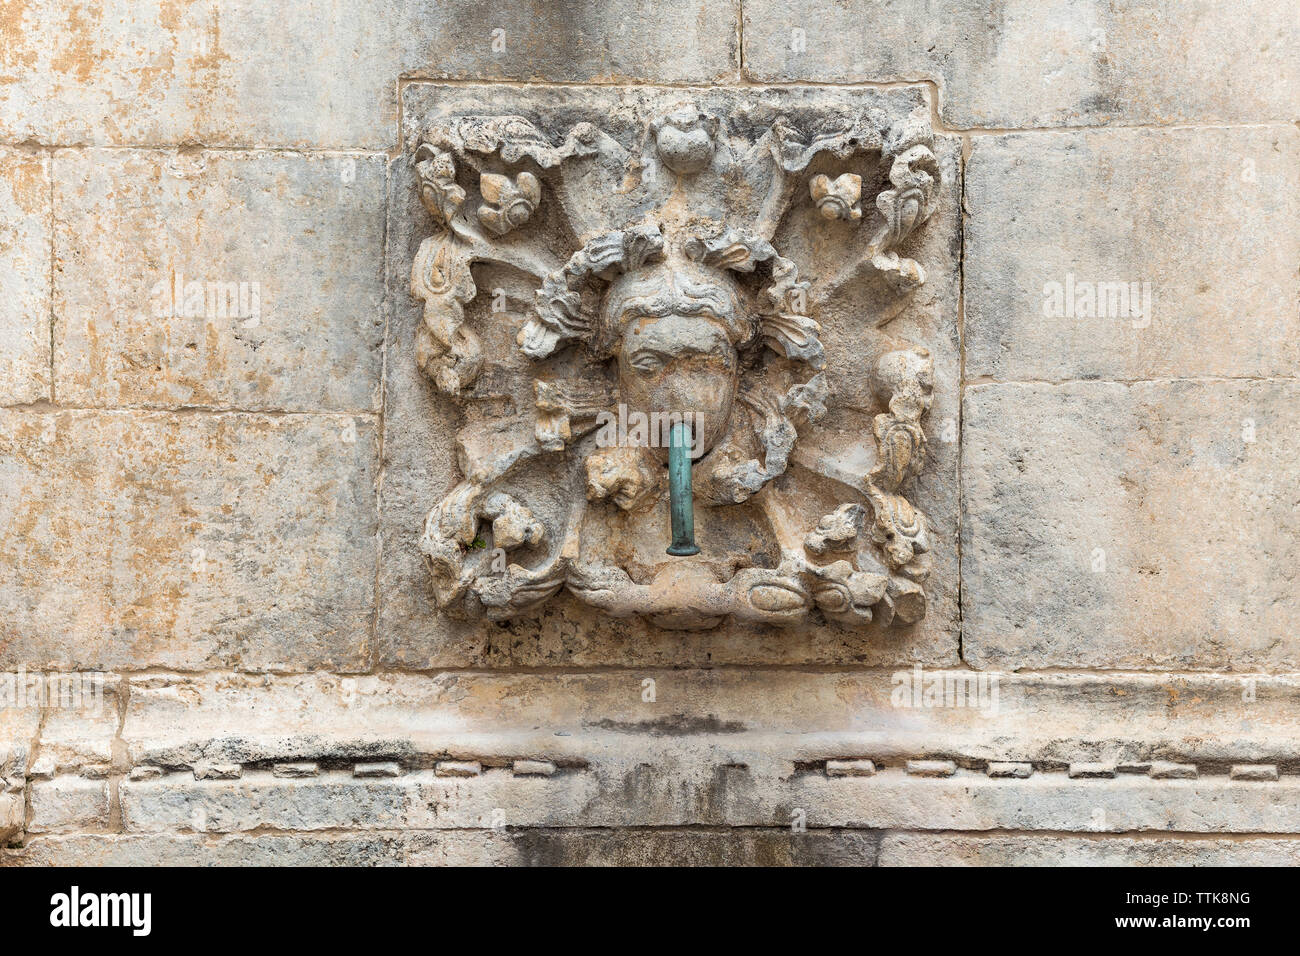 04  May 2019, Dubrovnik, Croatia. Old city architecture, Onofrio's Fountains. Detail - Stock Image